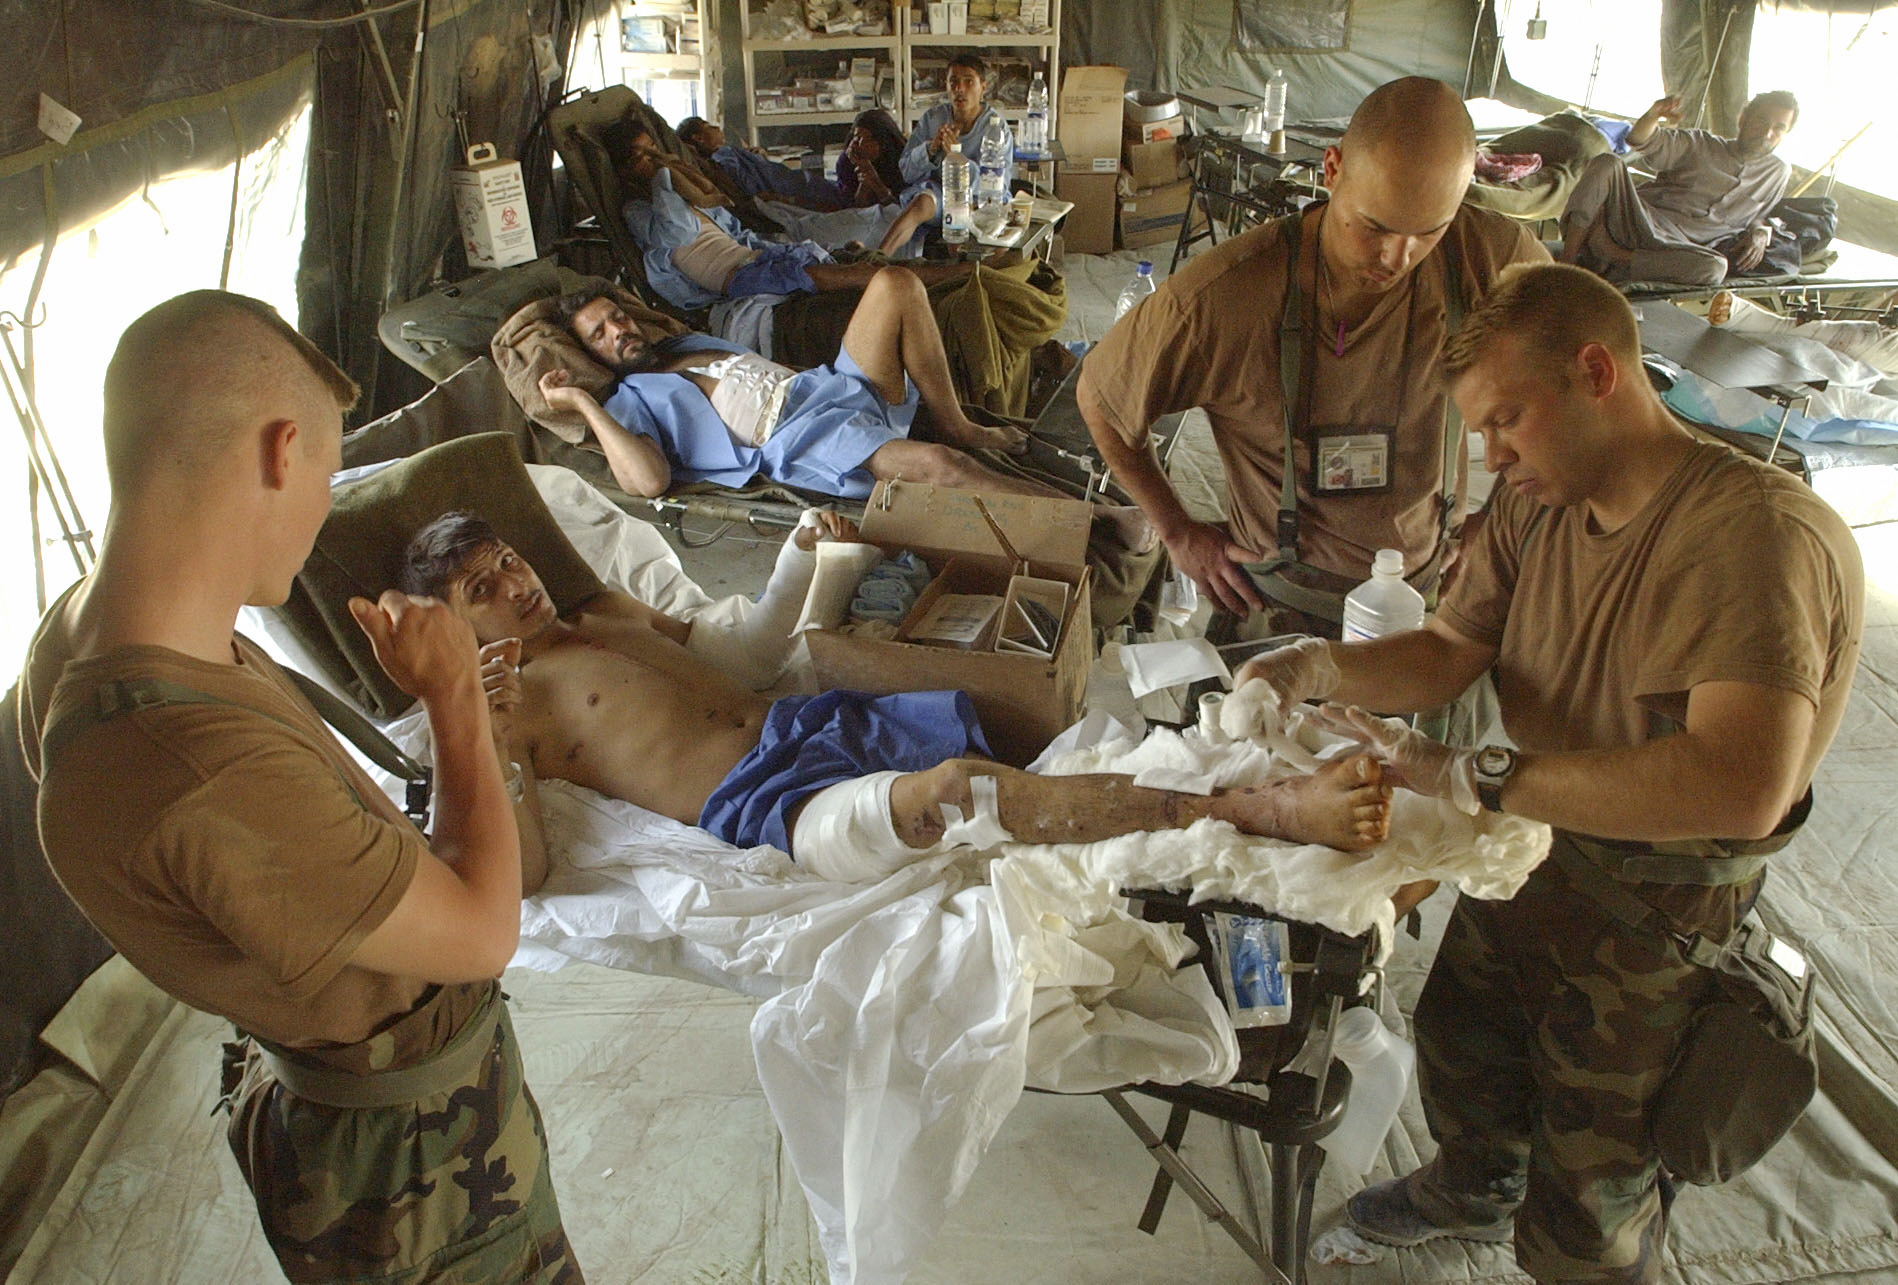 Medical personel of the U.S. Army 86th Combat Support Hospital located at Tallil air base in Southern Iraq, change the dressings on a wounded Iraqi civilian. Spec. Brian Herndon,left, from Carlsbad, NM, 1st Lt. Dave Allen, middle right, from Columbus OH, and Spec. James Shead, right, from Austin Texas care for the wounded. (Alan Lessig/Army Times)